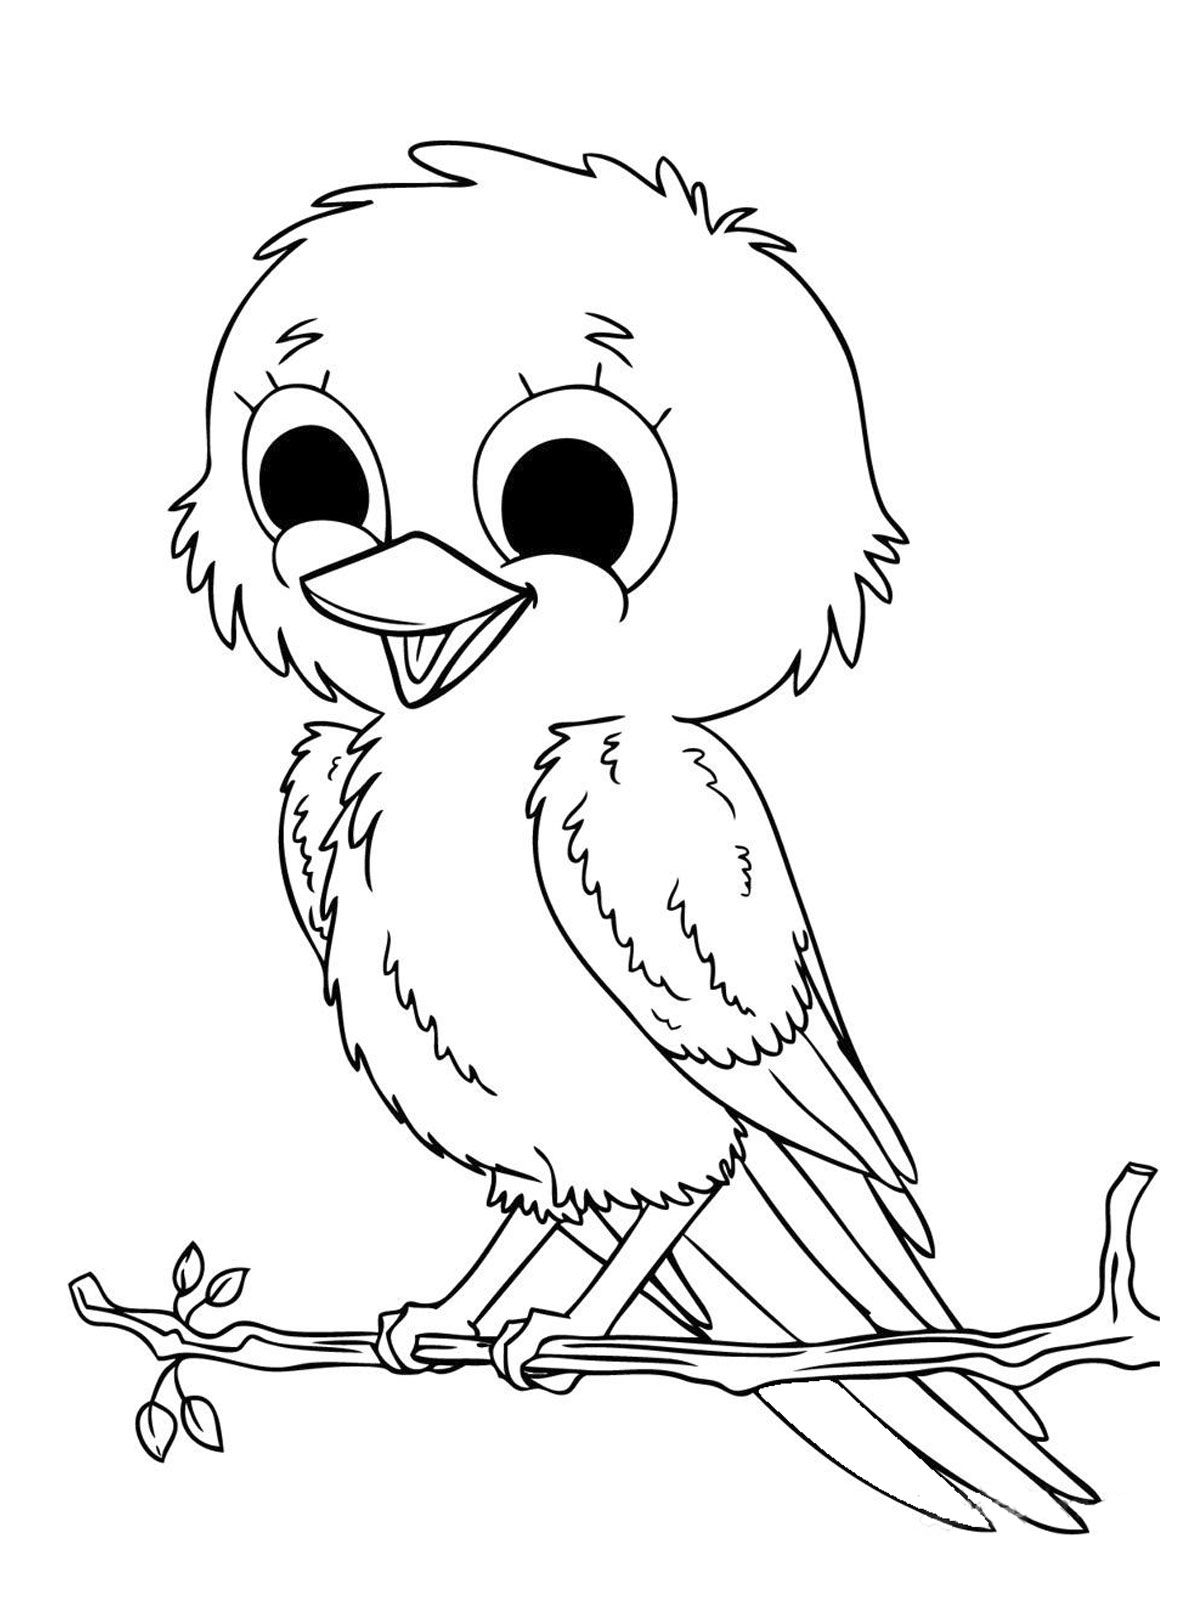 coloring pages disney animals bambi friend owl coloring pages bambi friendowl owl pages animals disney coloring